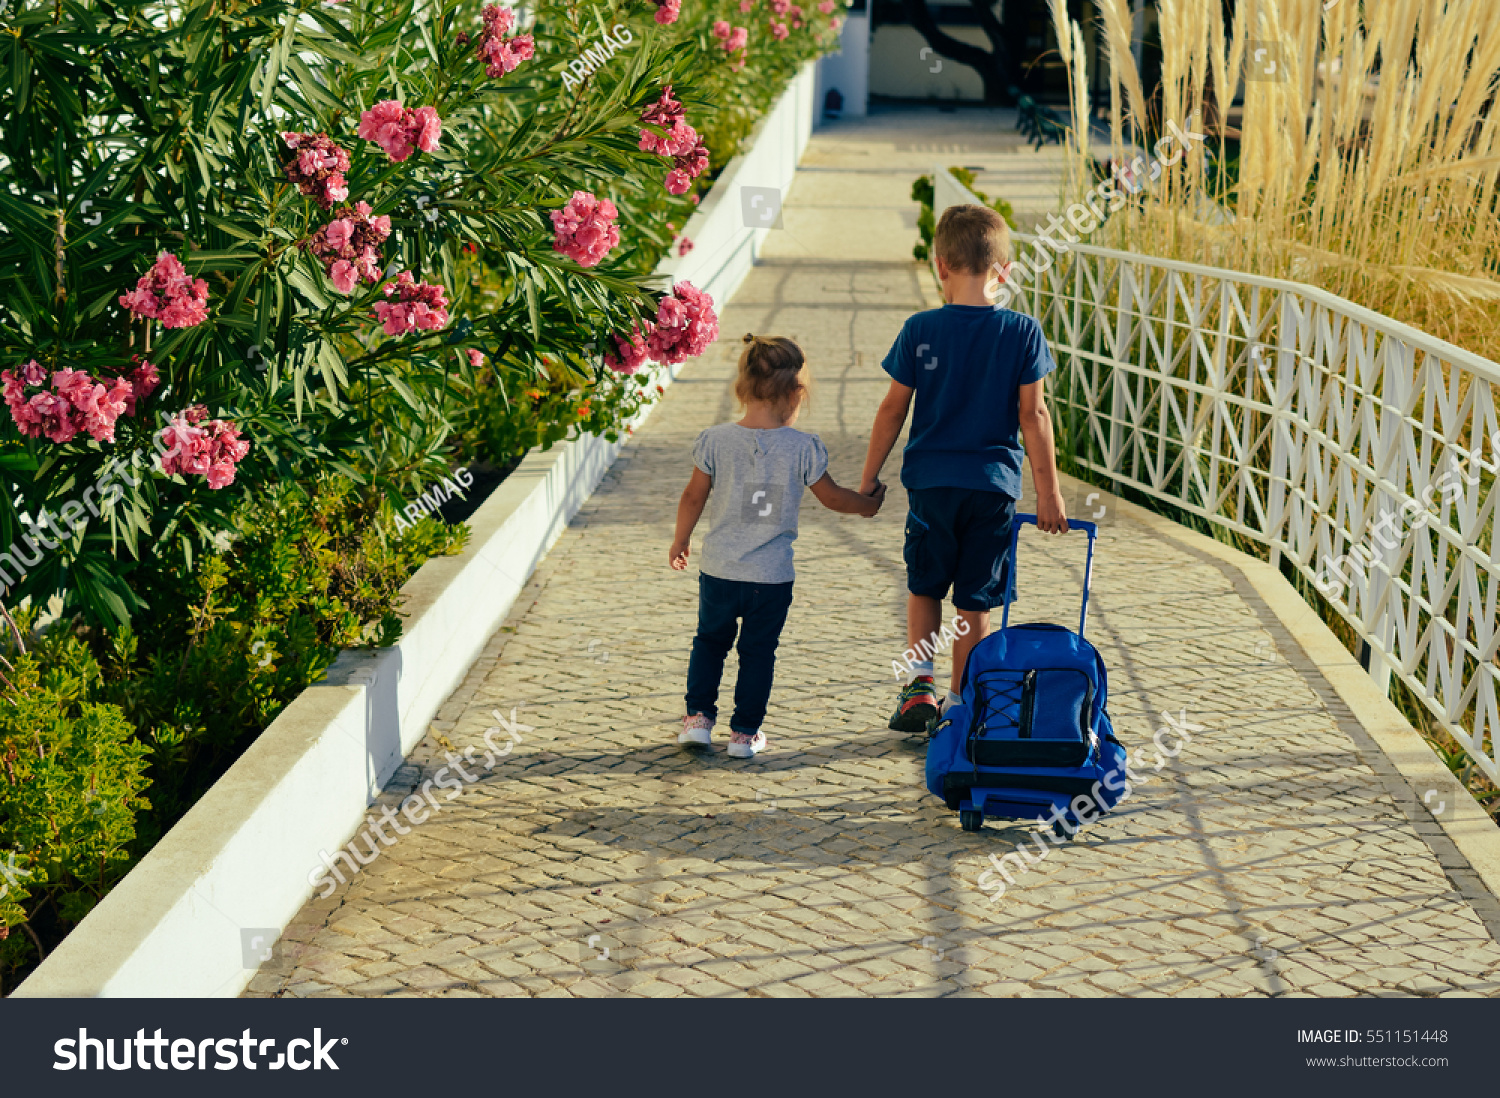 Back View Children Holding Hands Walk Stock Photo Edit Now On Electricity It Walks Kids Through The Nature Of And Together Road Outdoors Background Friendship People